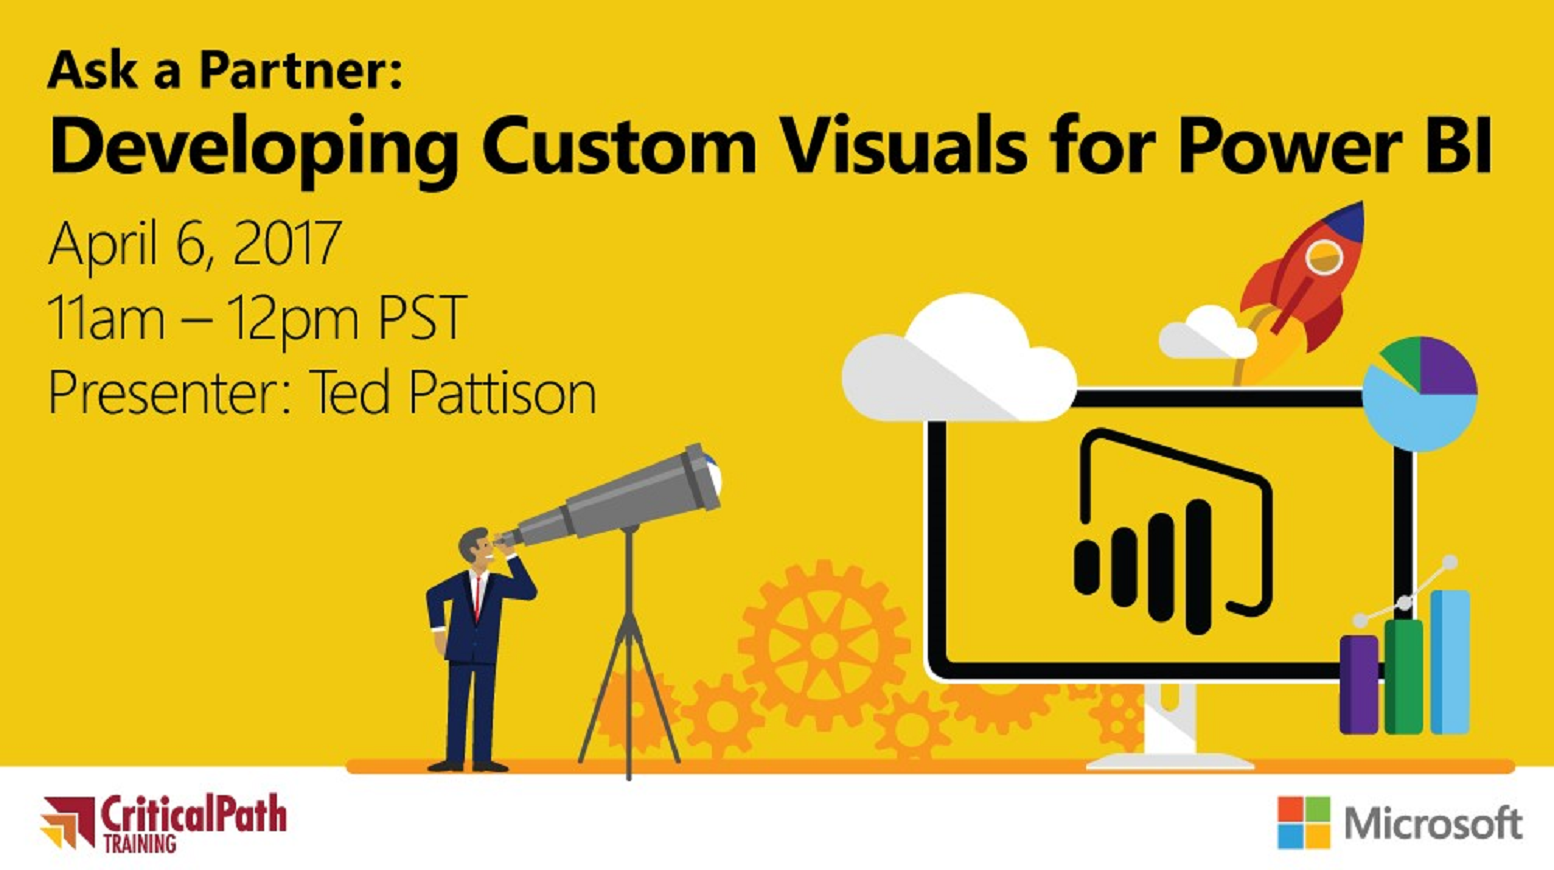 Ask a Partner: Developing Custom Visuals for Power BI